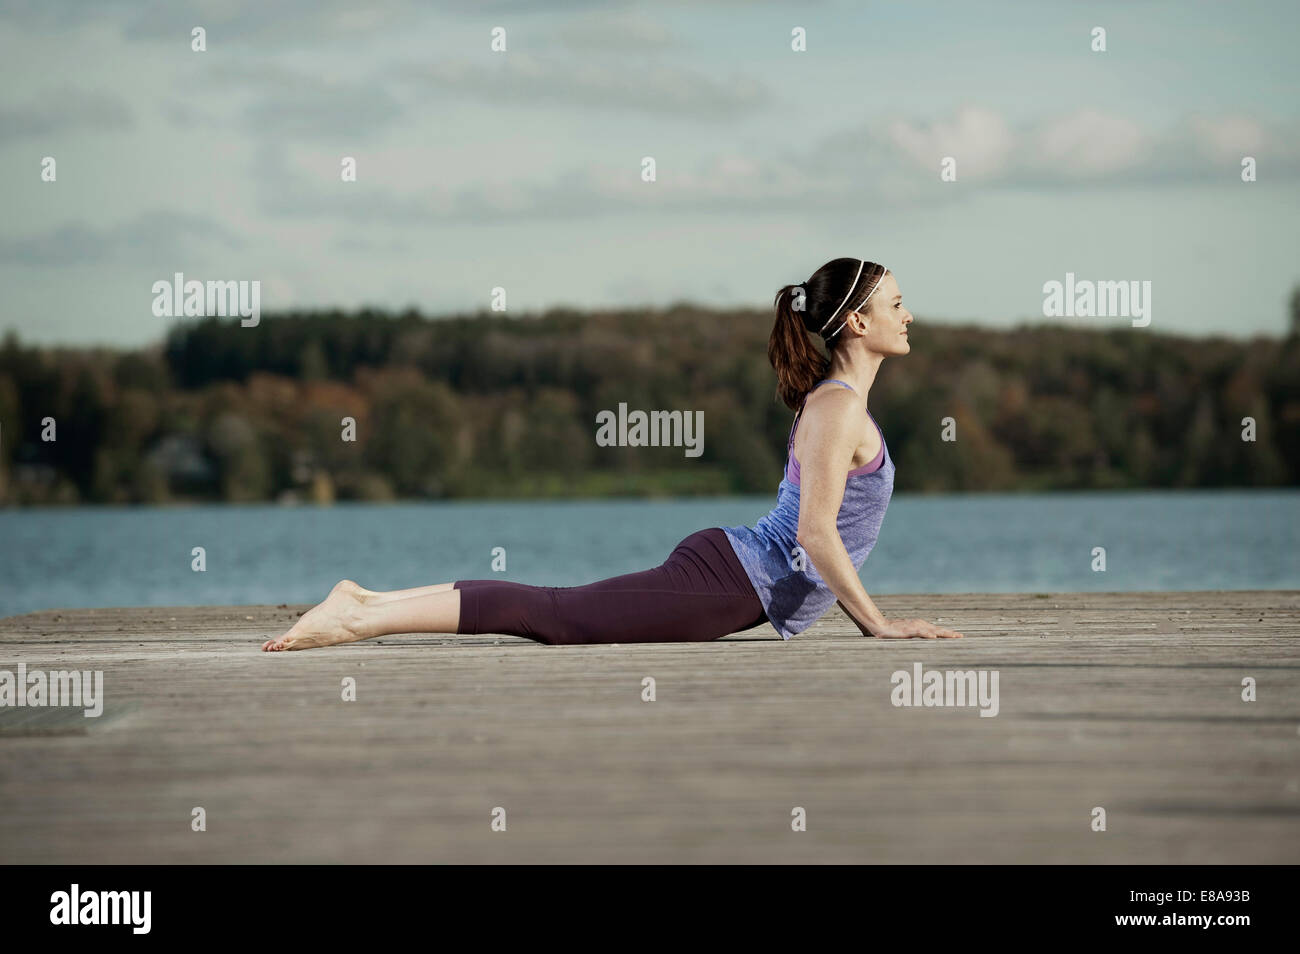 Woman practicing yoga on jetty, Woerthsee, Bavaria, Germany - Stock Image